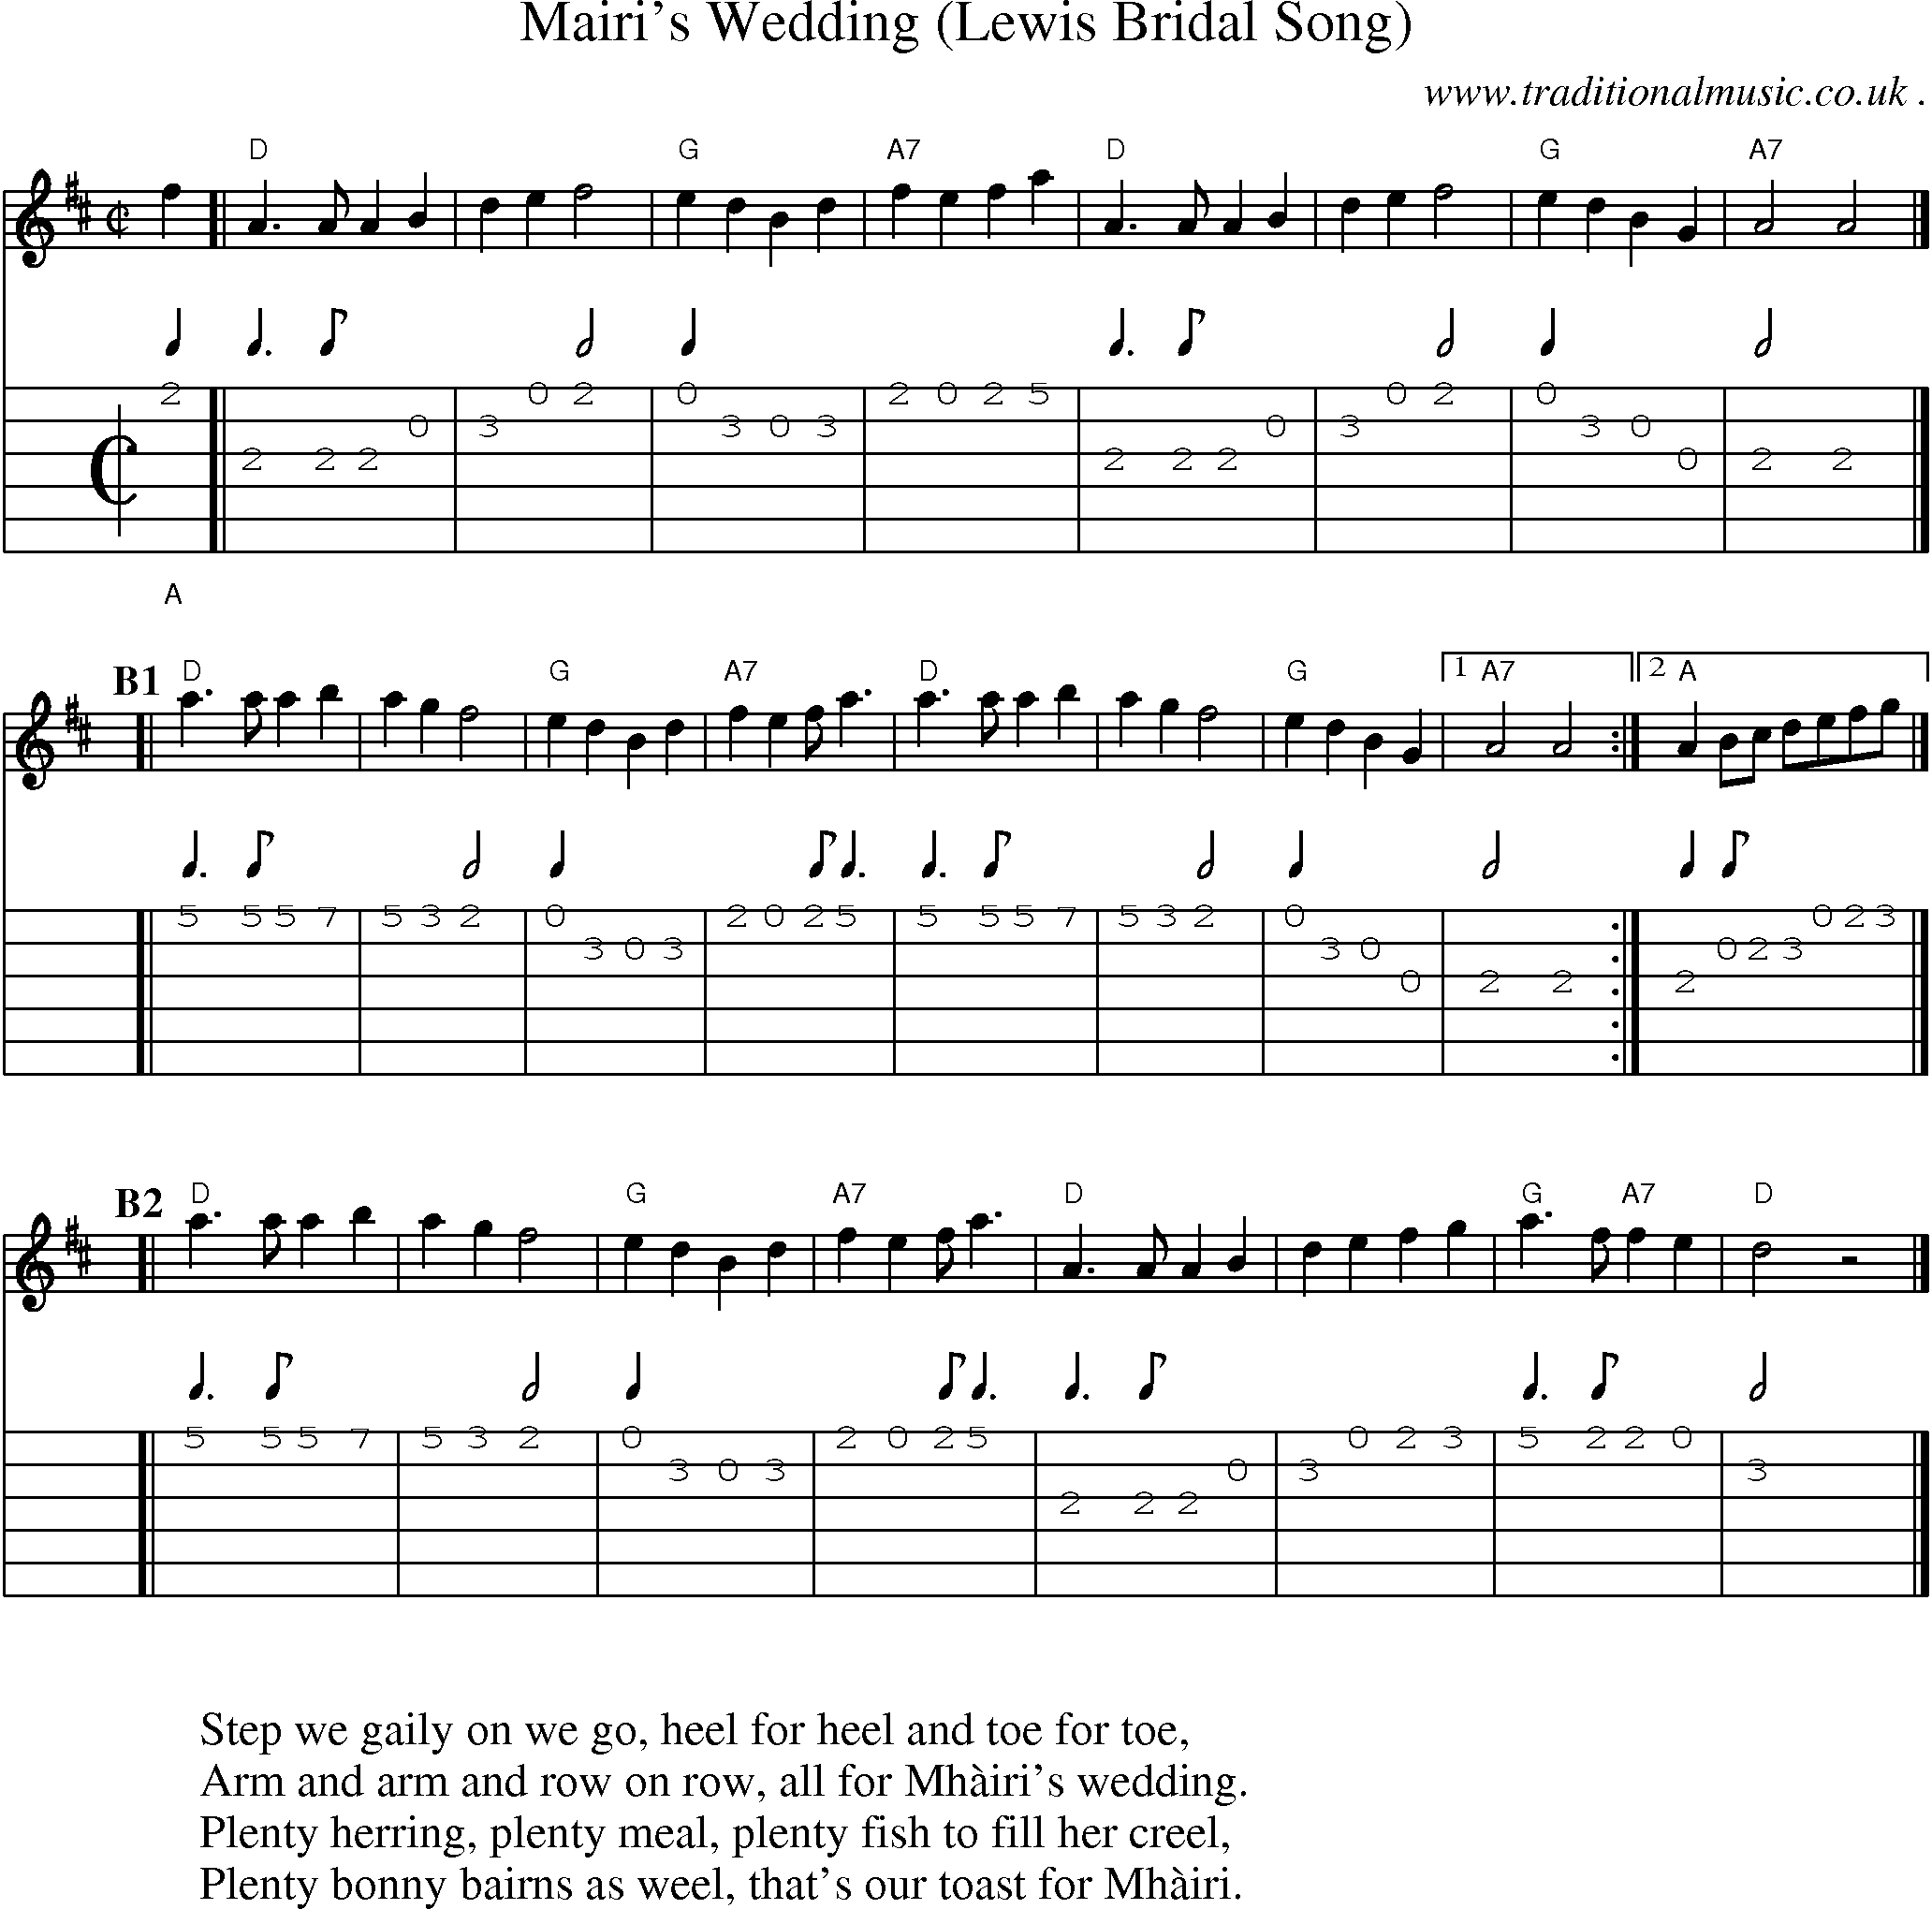 Scottish Tune, Sheetmusic, Midi, Mp3, Guitar Chords & Tabs